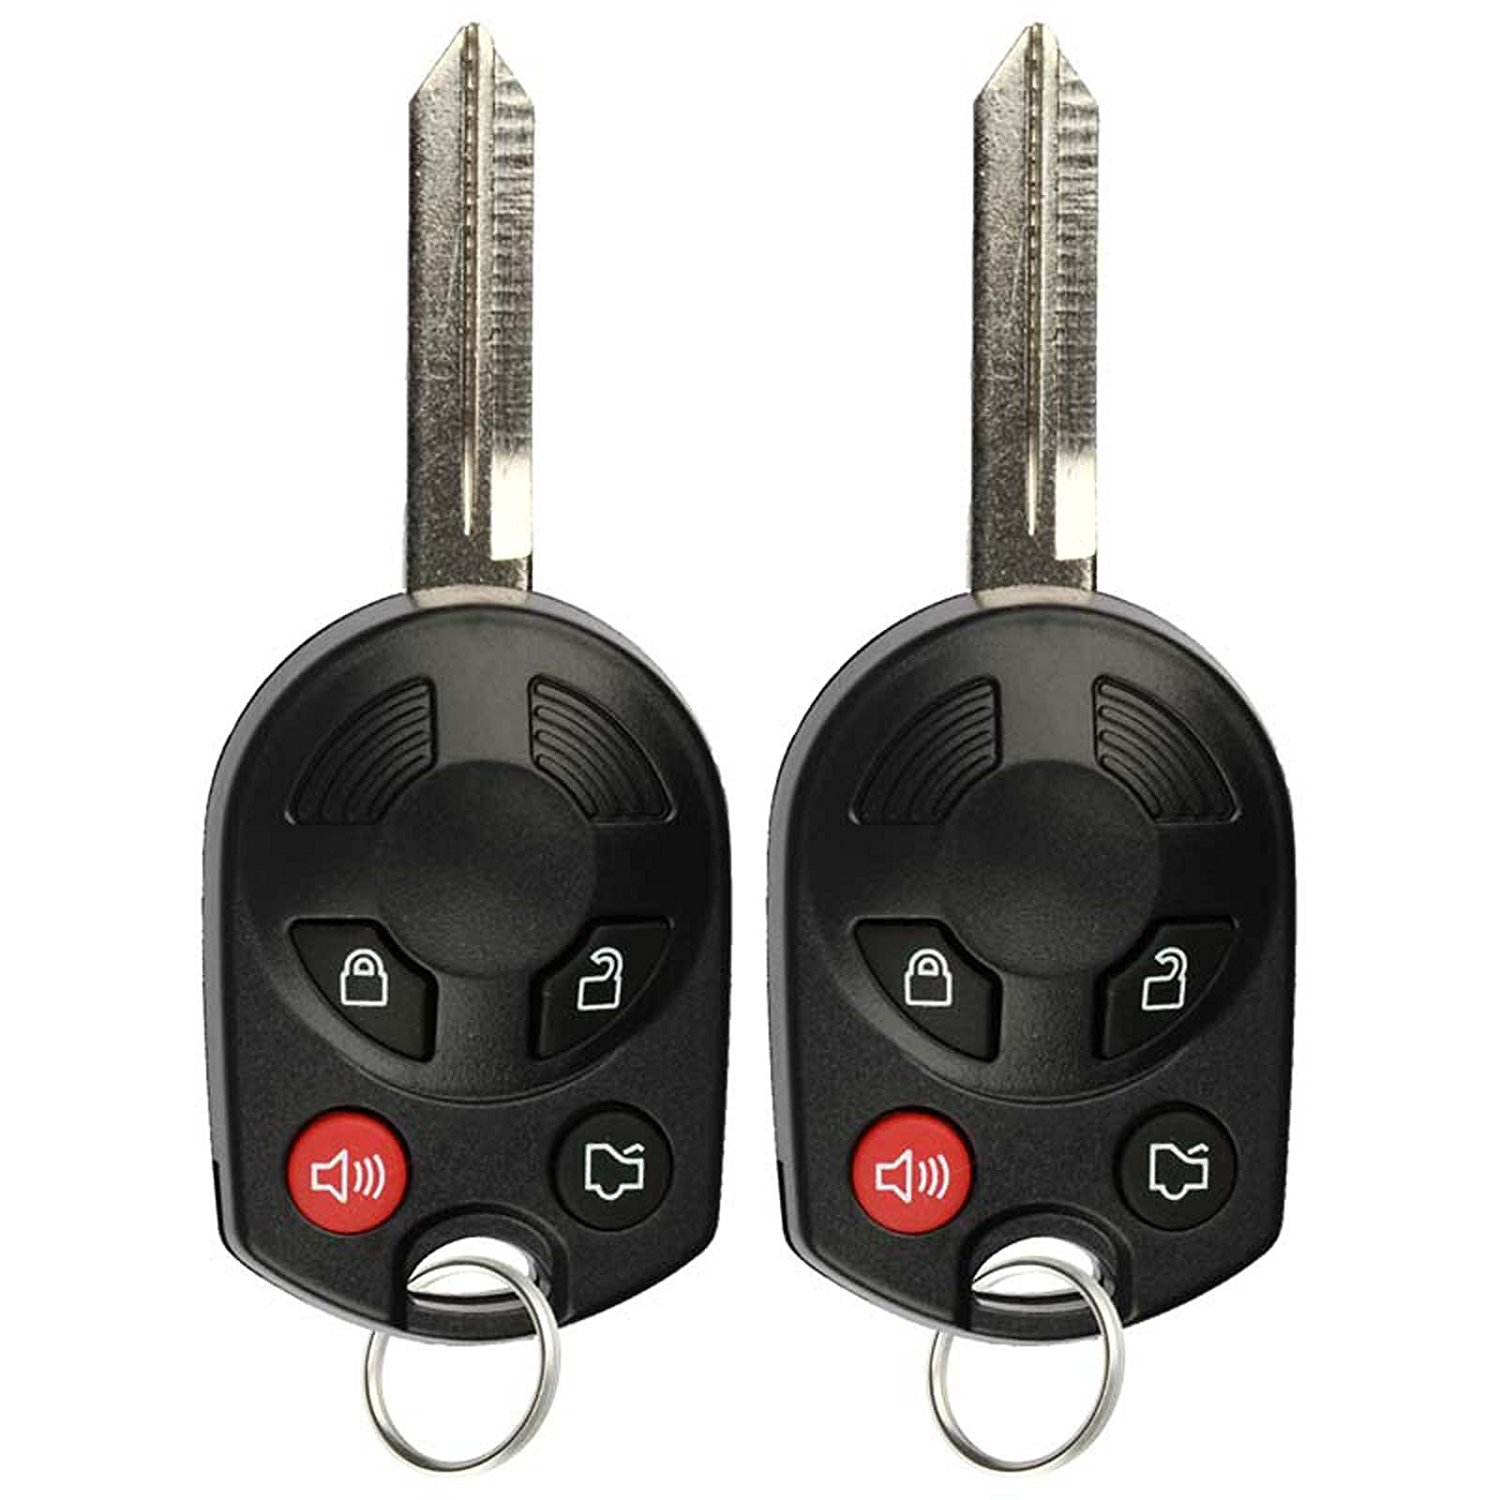 2 PACK KeylessOption Keyless Entry Remote Control Car Key Fob Replacement OUCD6000022 for Mercury Lincoln Ford Mazda